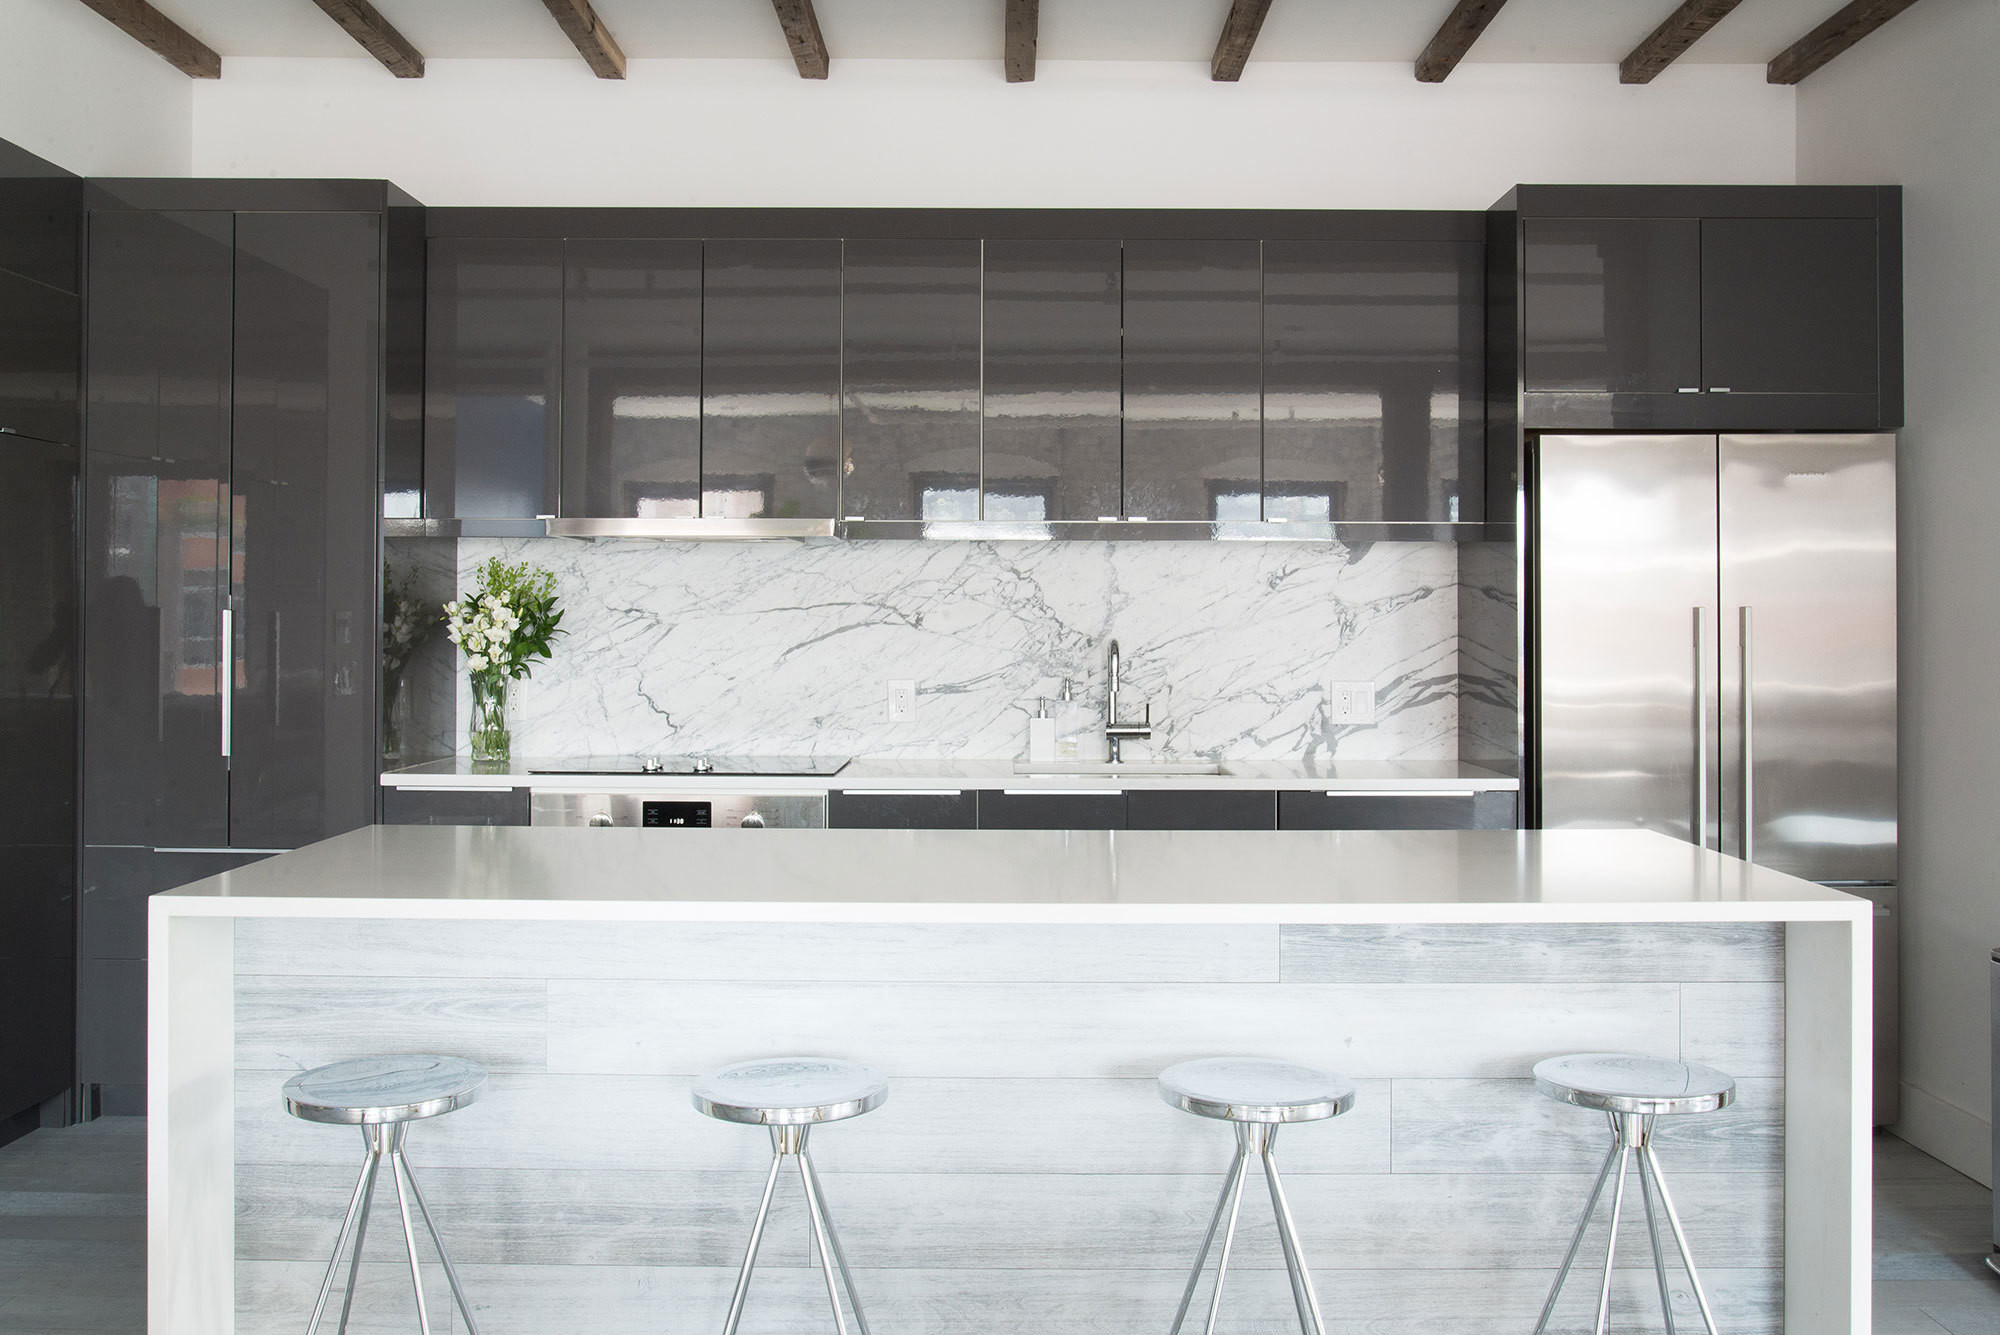 The streamlined kitchen, in glossy gray and marble, provides a visual balance to the many bold design choices.